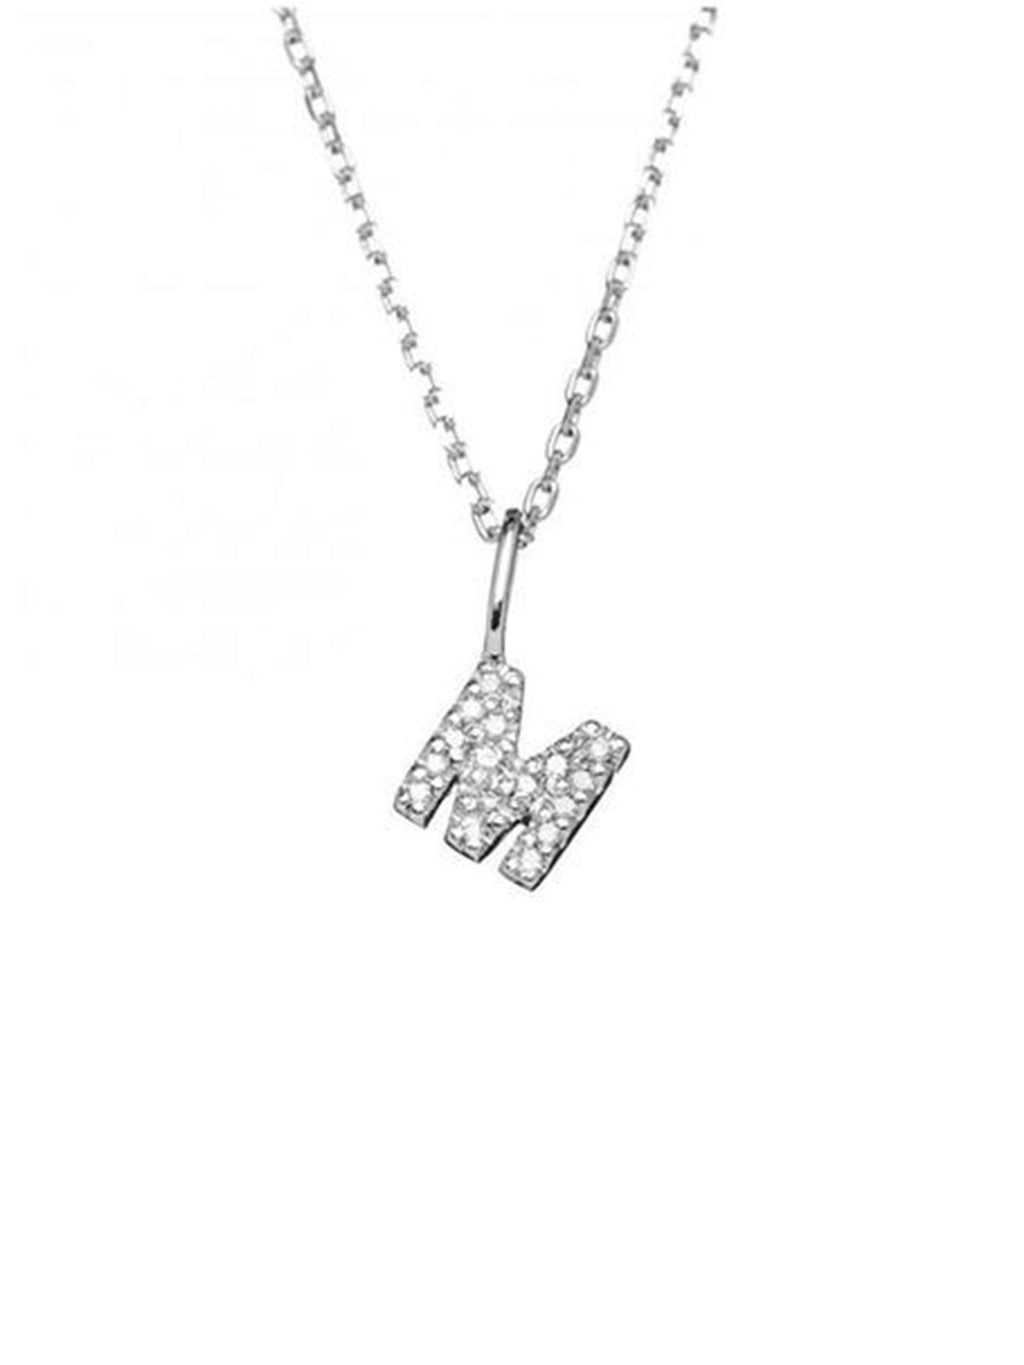 Letter Necklace in Real Diamonds - Alef Bet Jewelry by Paula